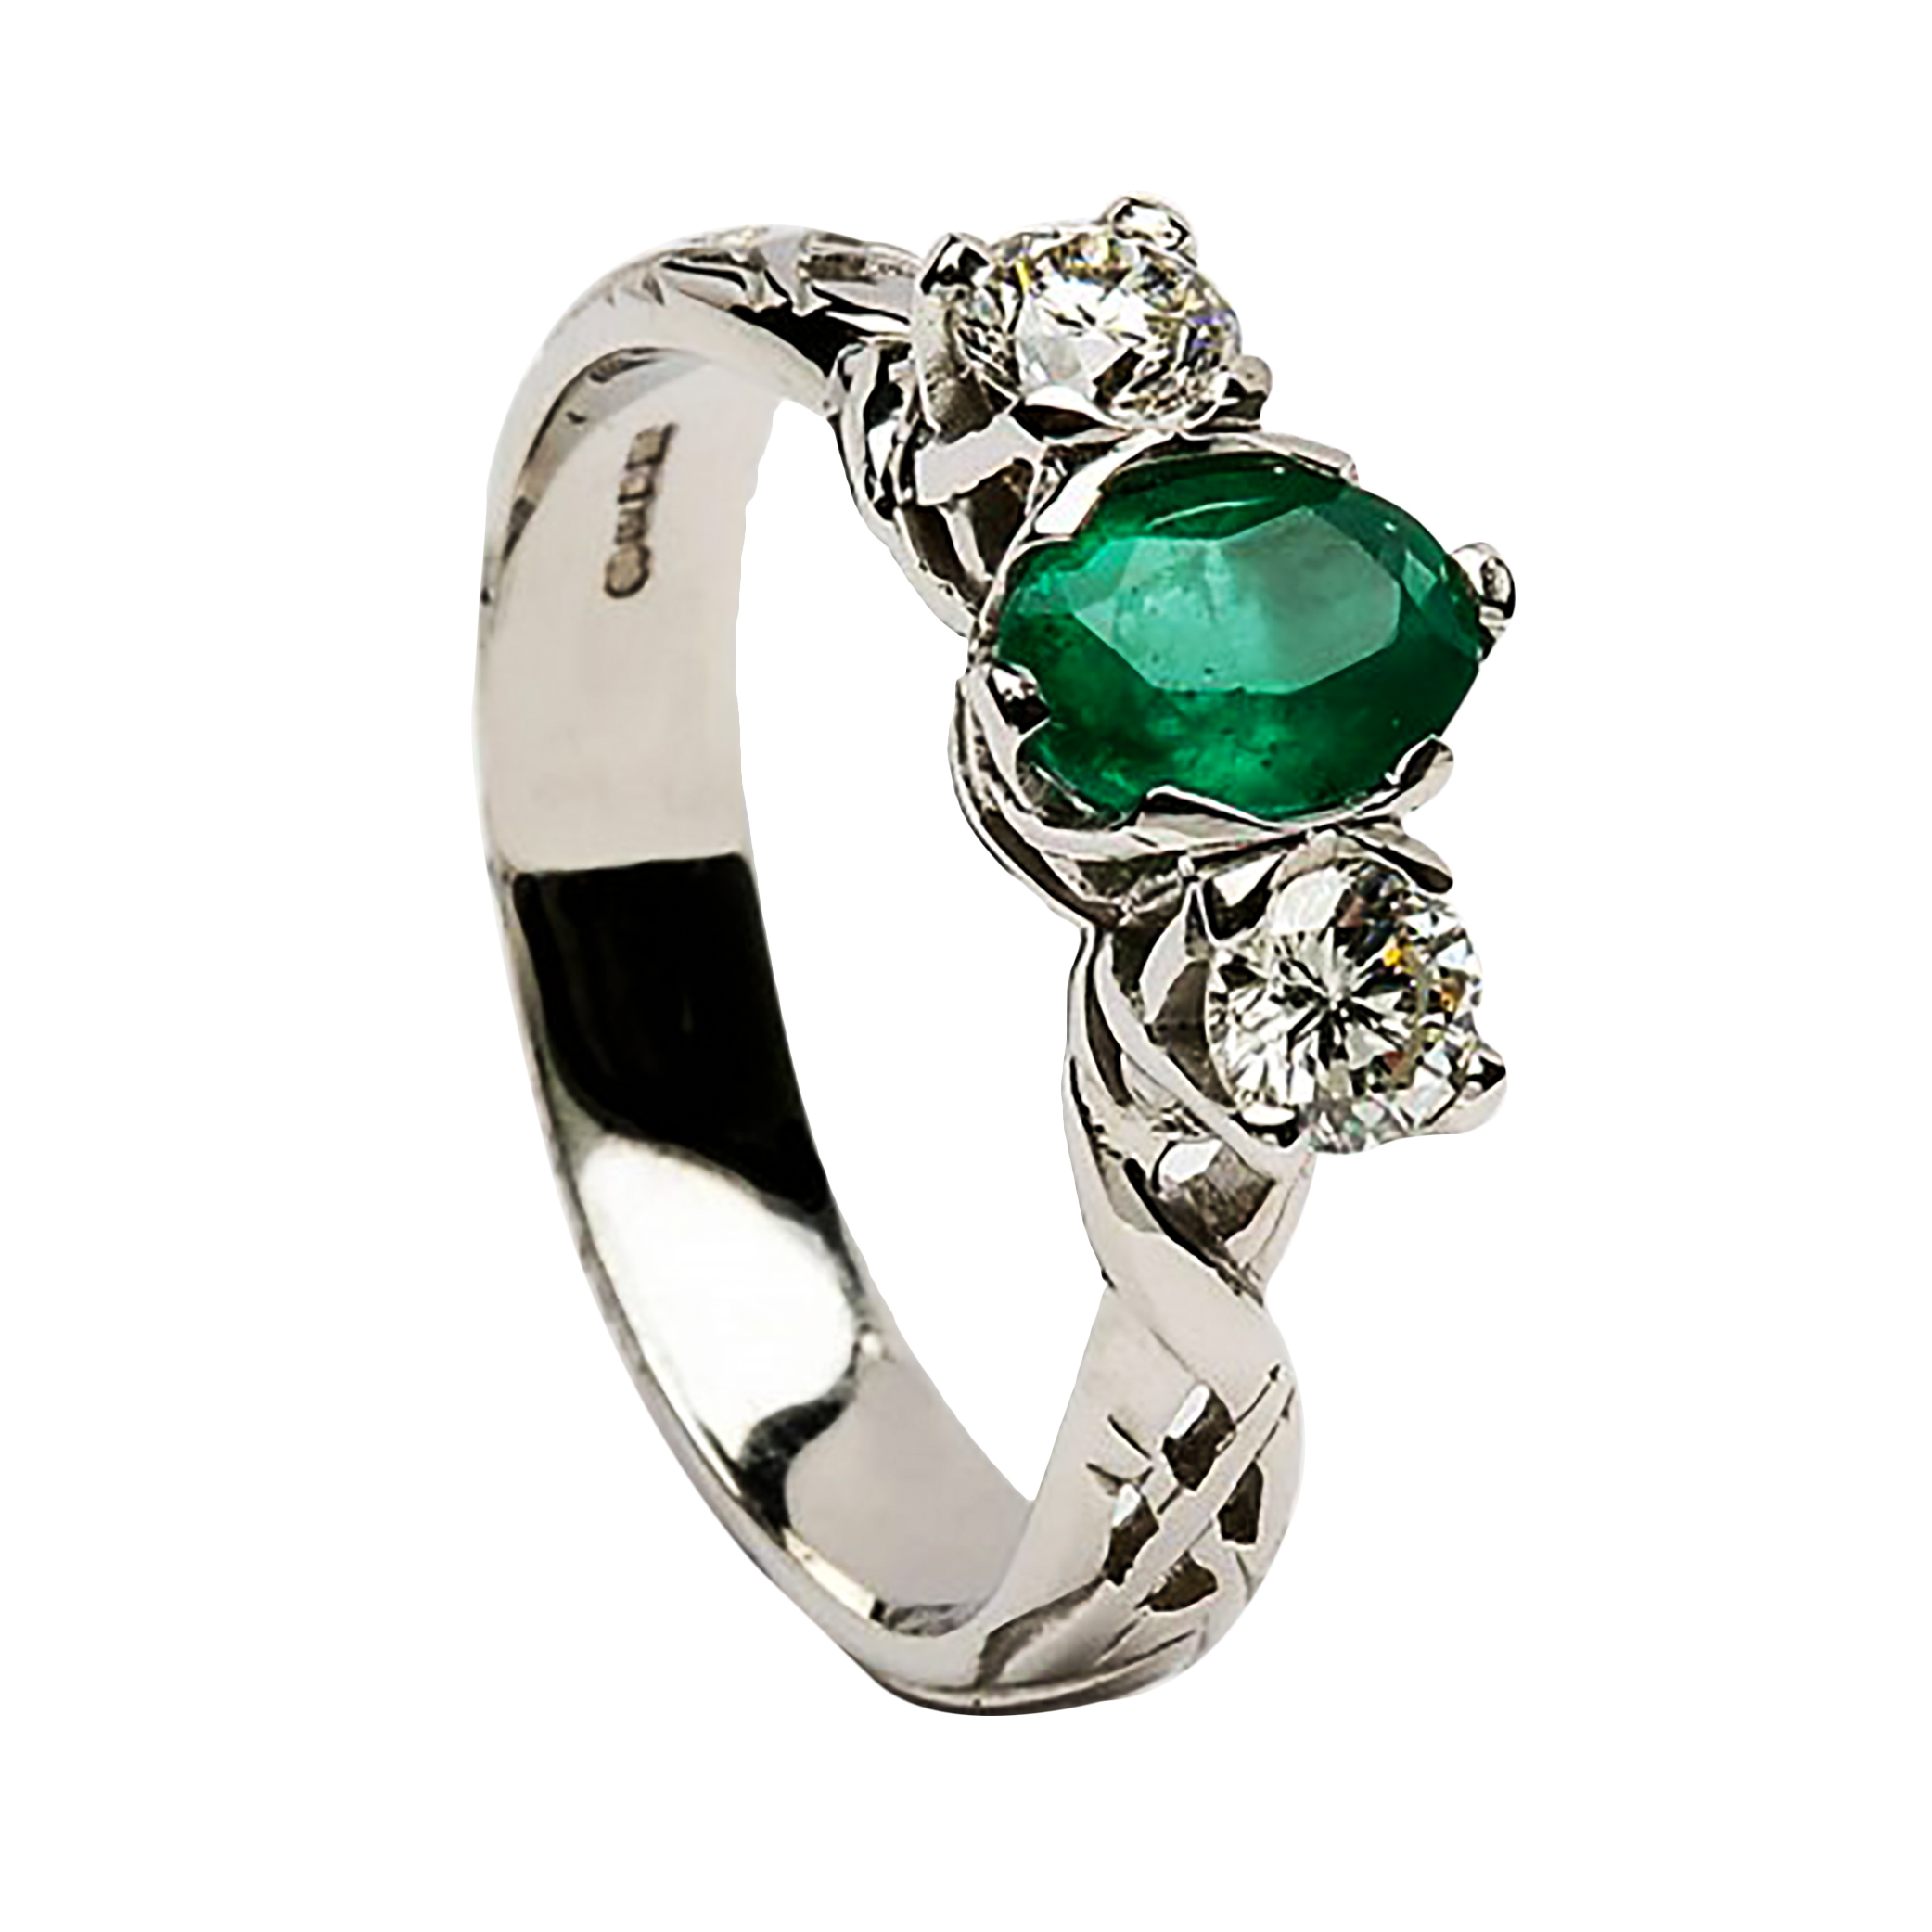 diamond side square classic ring a trilliant rings graff stones featuring cut with collections emerald